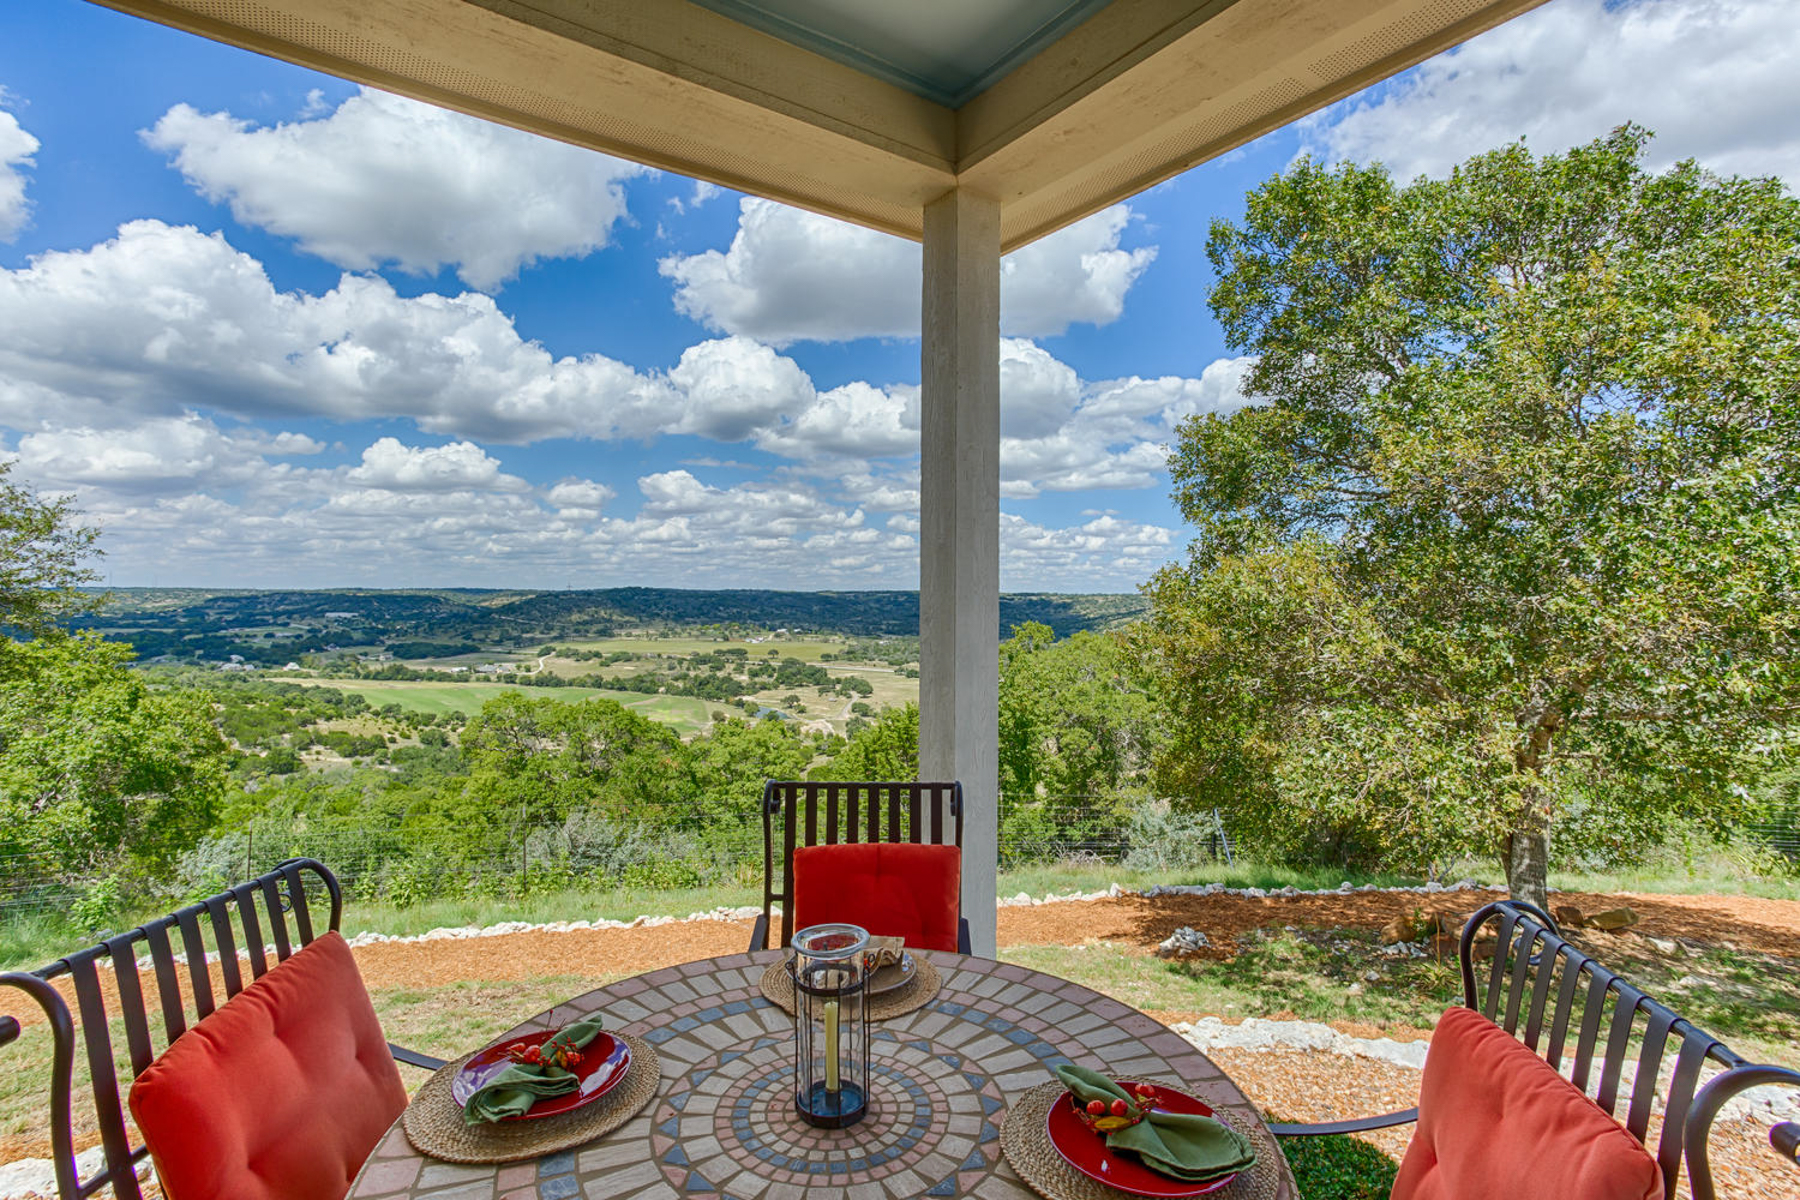 Additional photo for property listing at Panoramic Views From This Gorgeous Comfort Estate 174 Camino Del Reserve Ln Comfort, Texas 78013 Estados Unidos